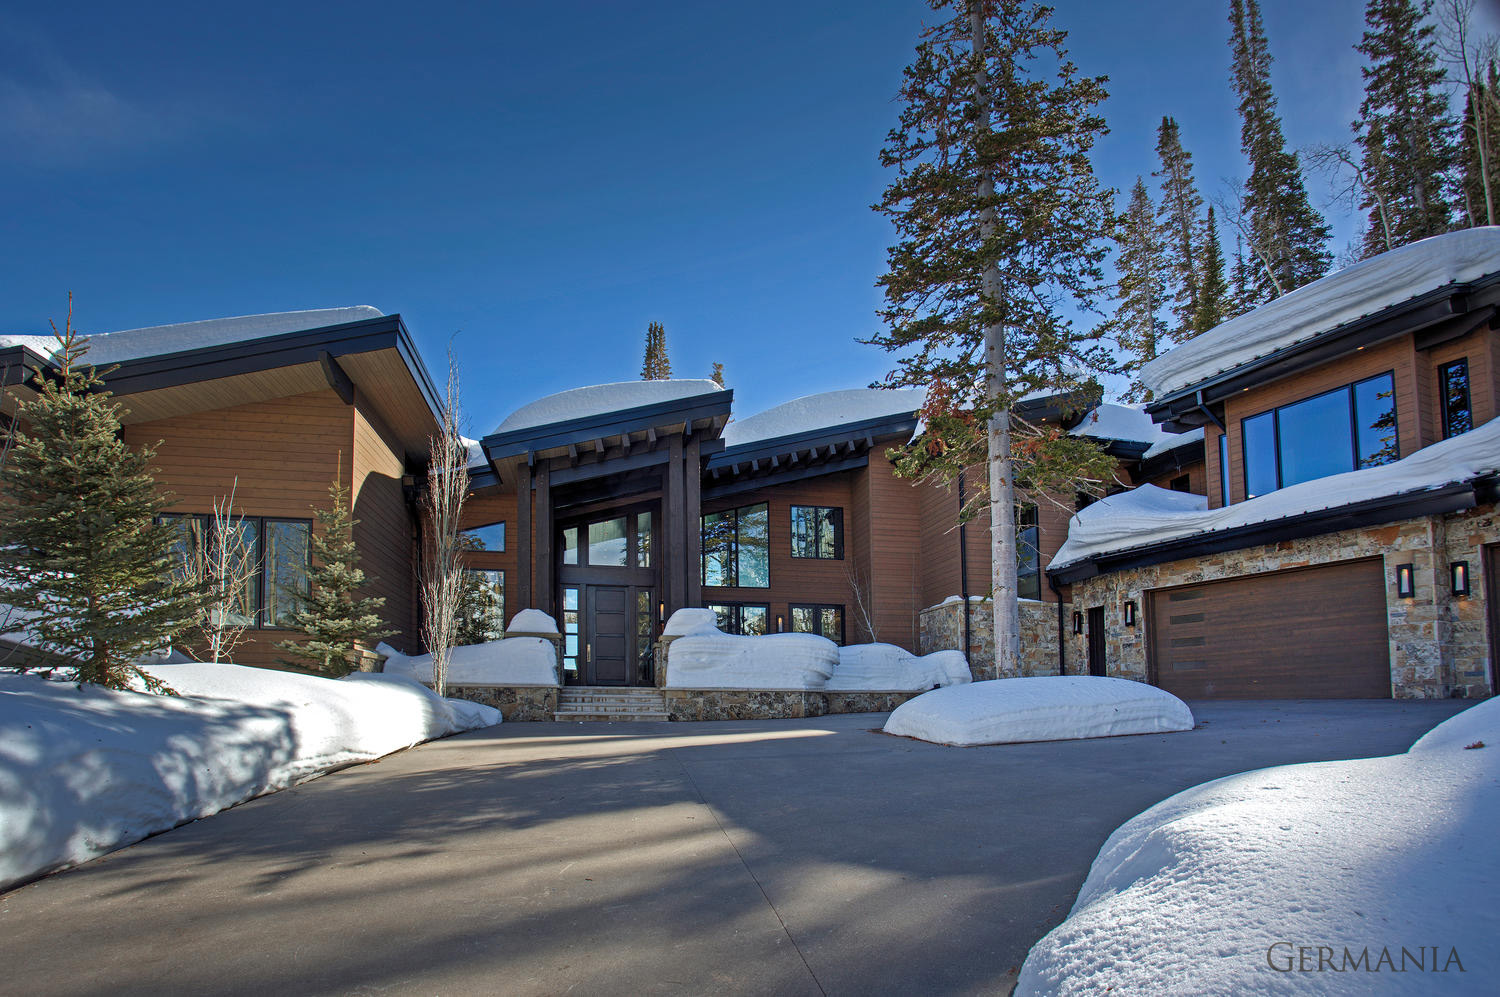 Germania Construction specializes in custom built homes in Park City Utah and around the region.